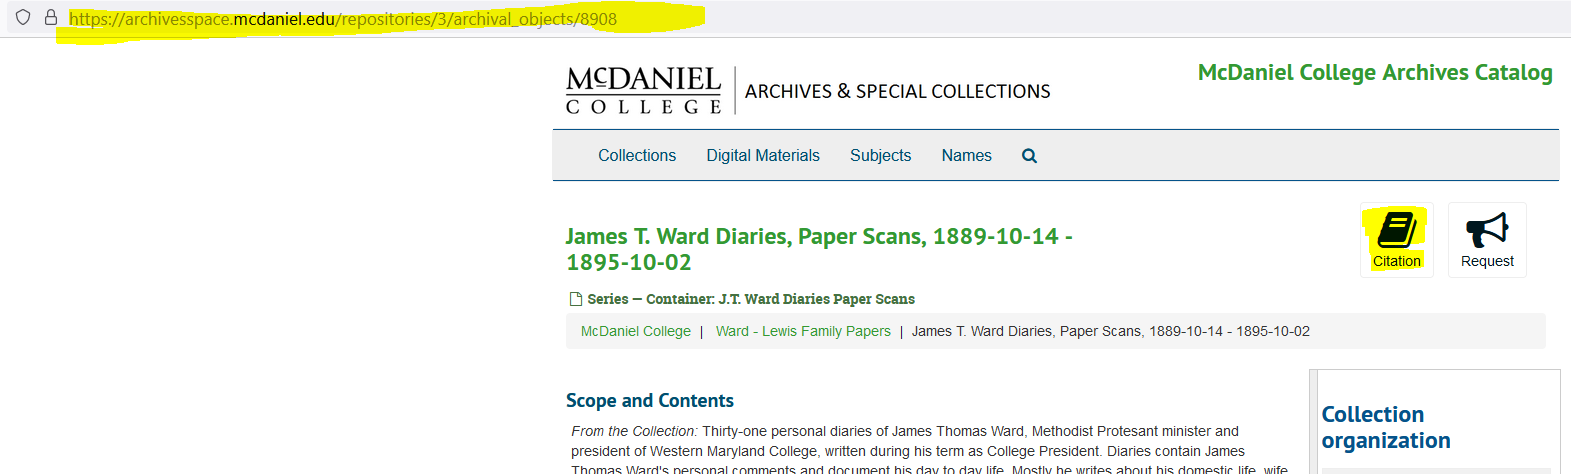 Archivesspace Catalog screen capture